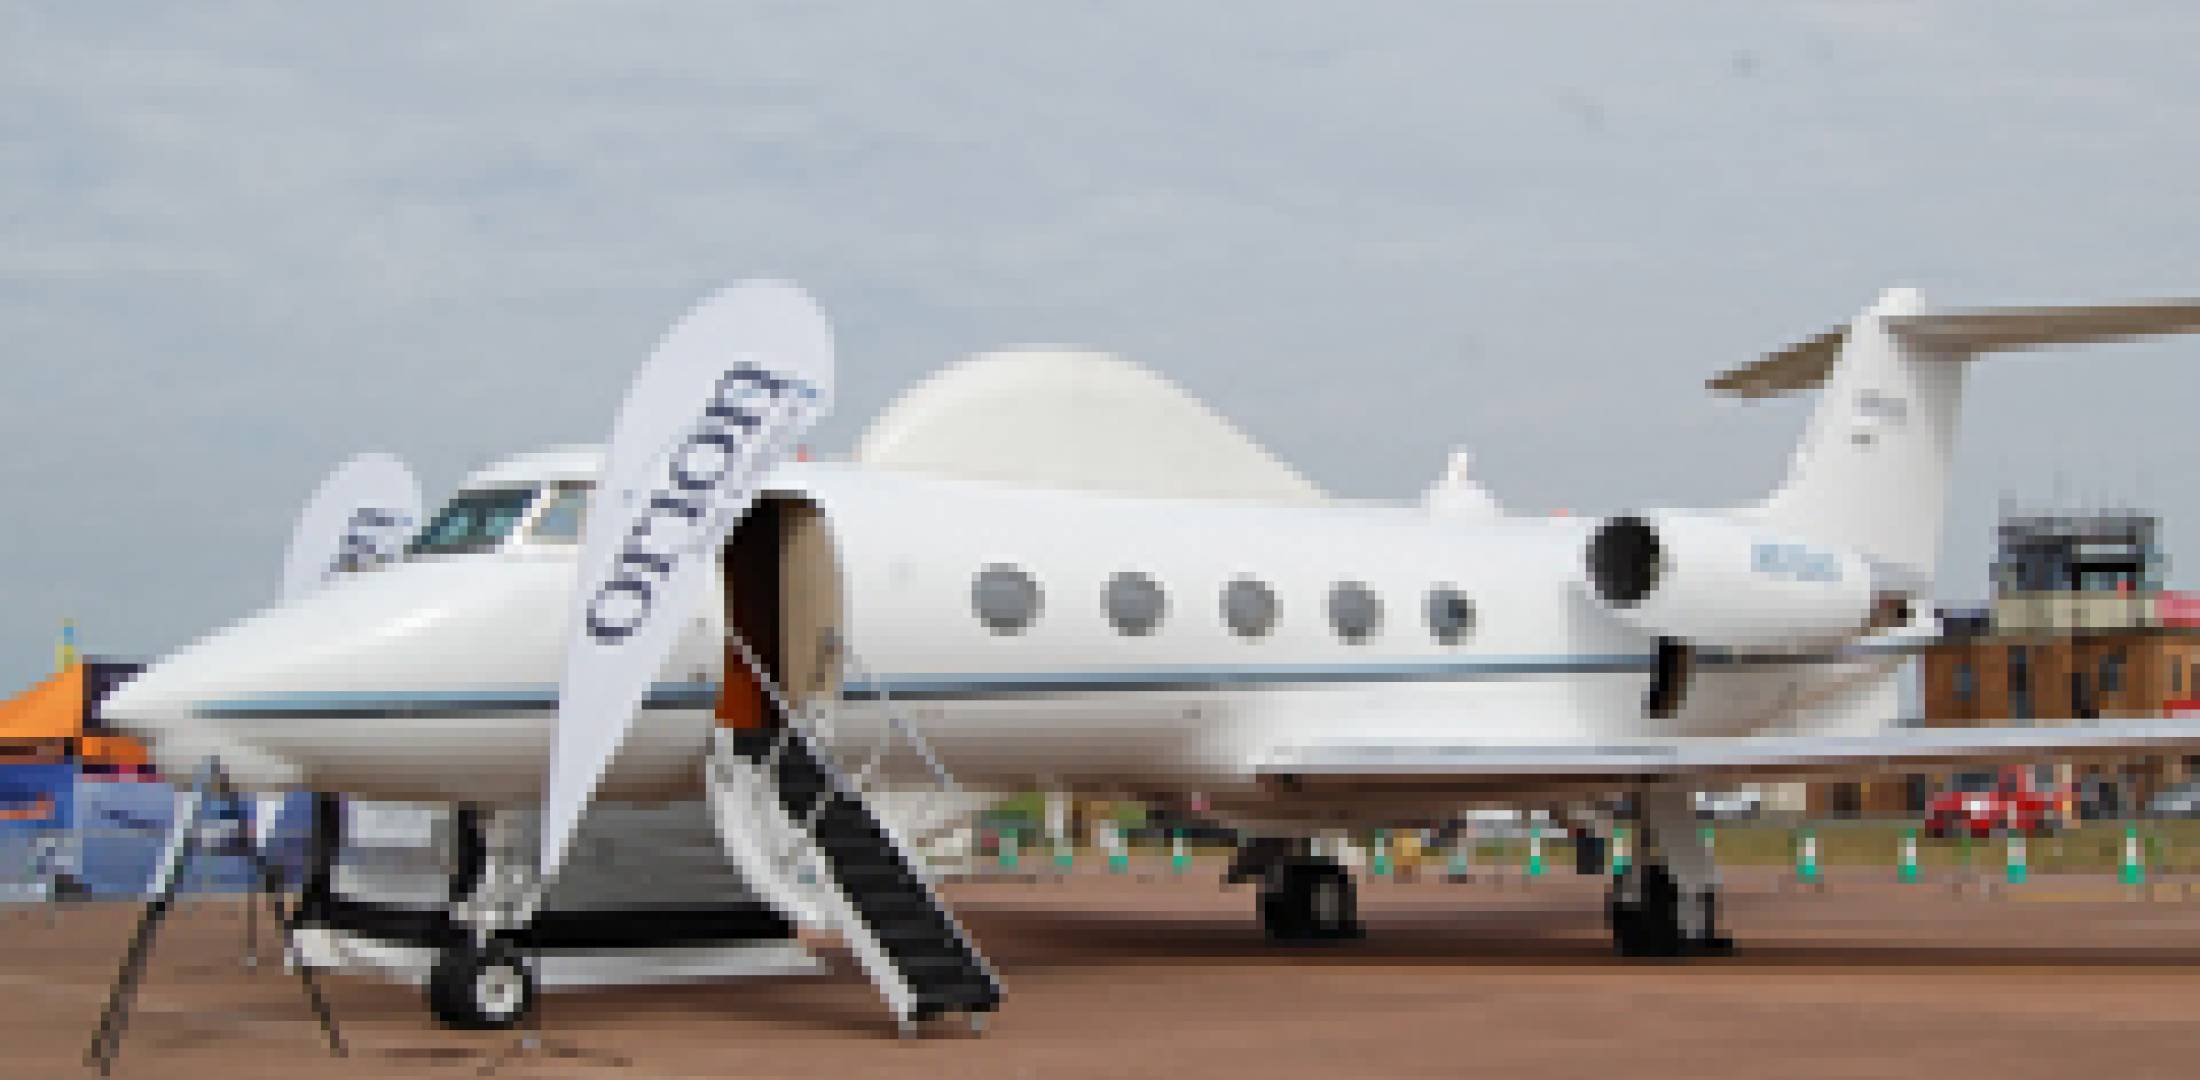 The Orion Aircraft Group has modified this Gulfstream IISP as a communication...